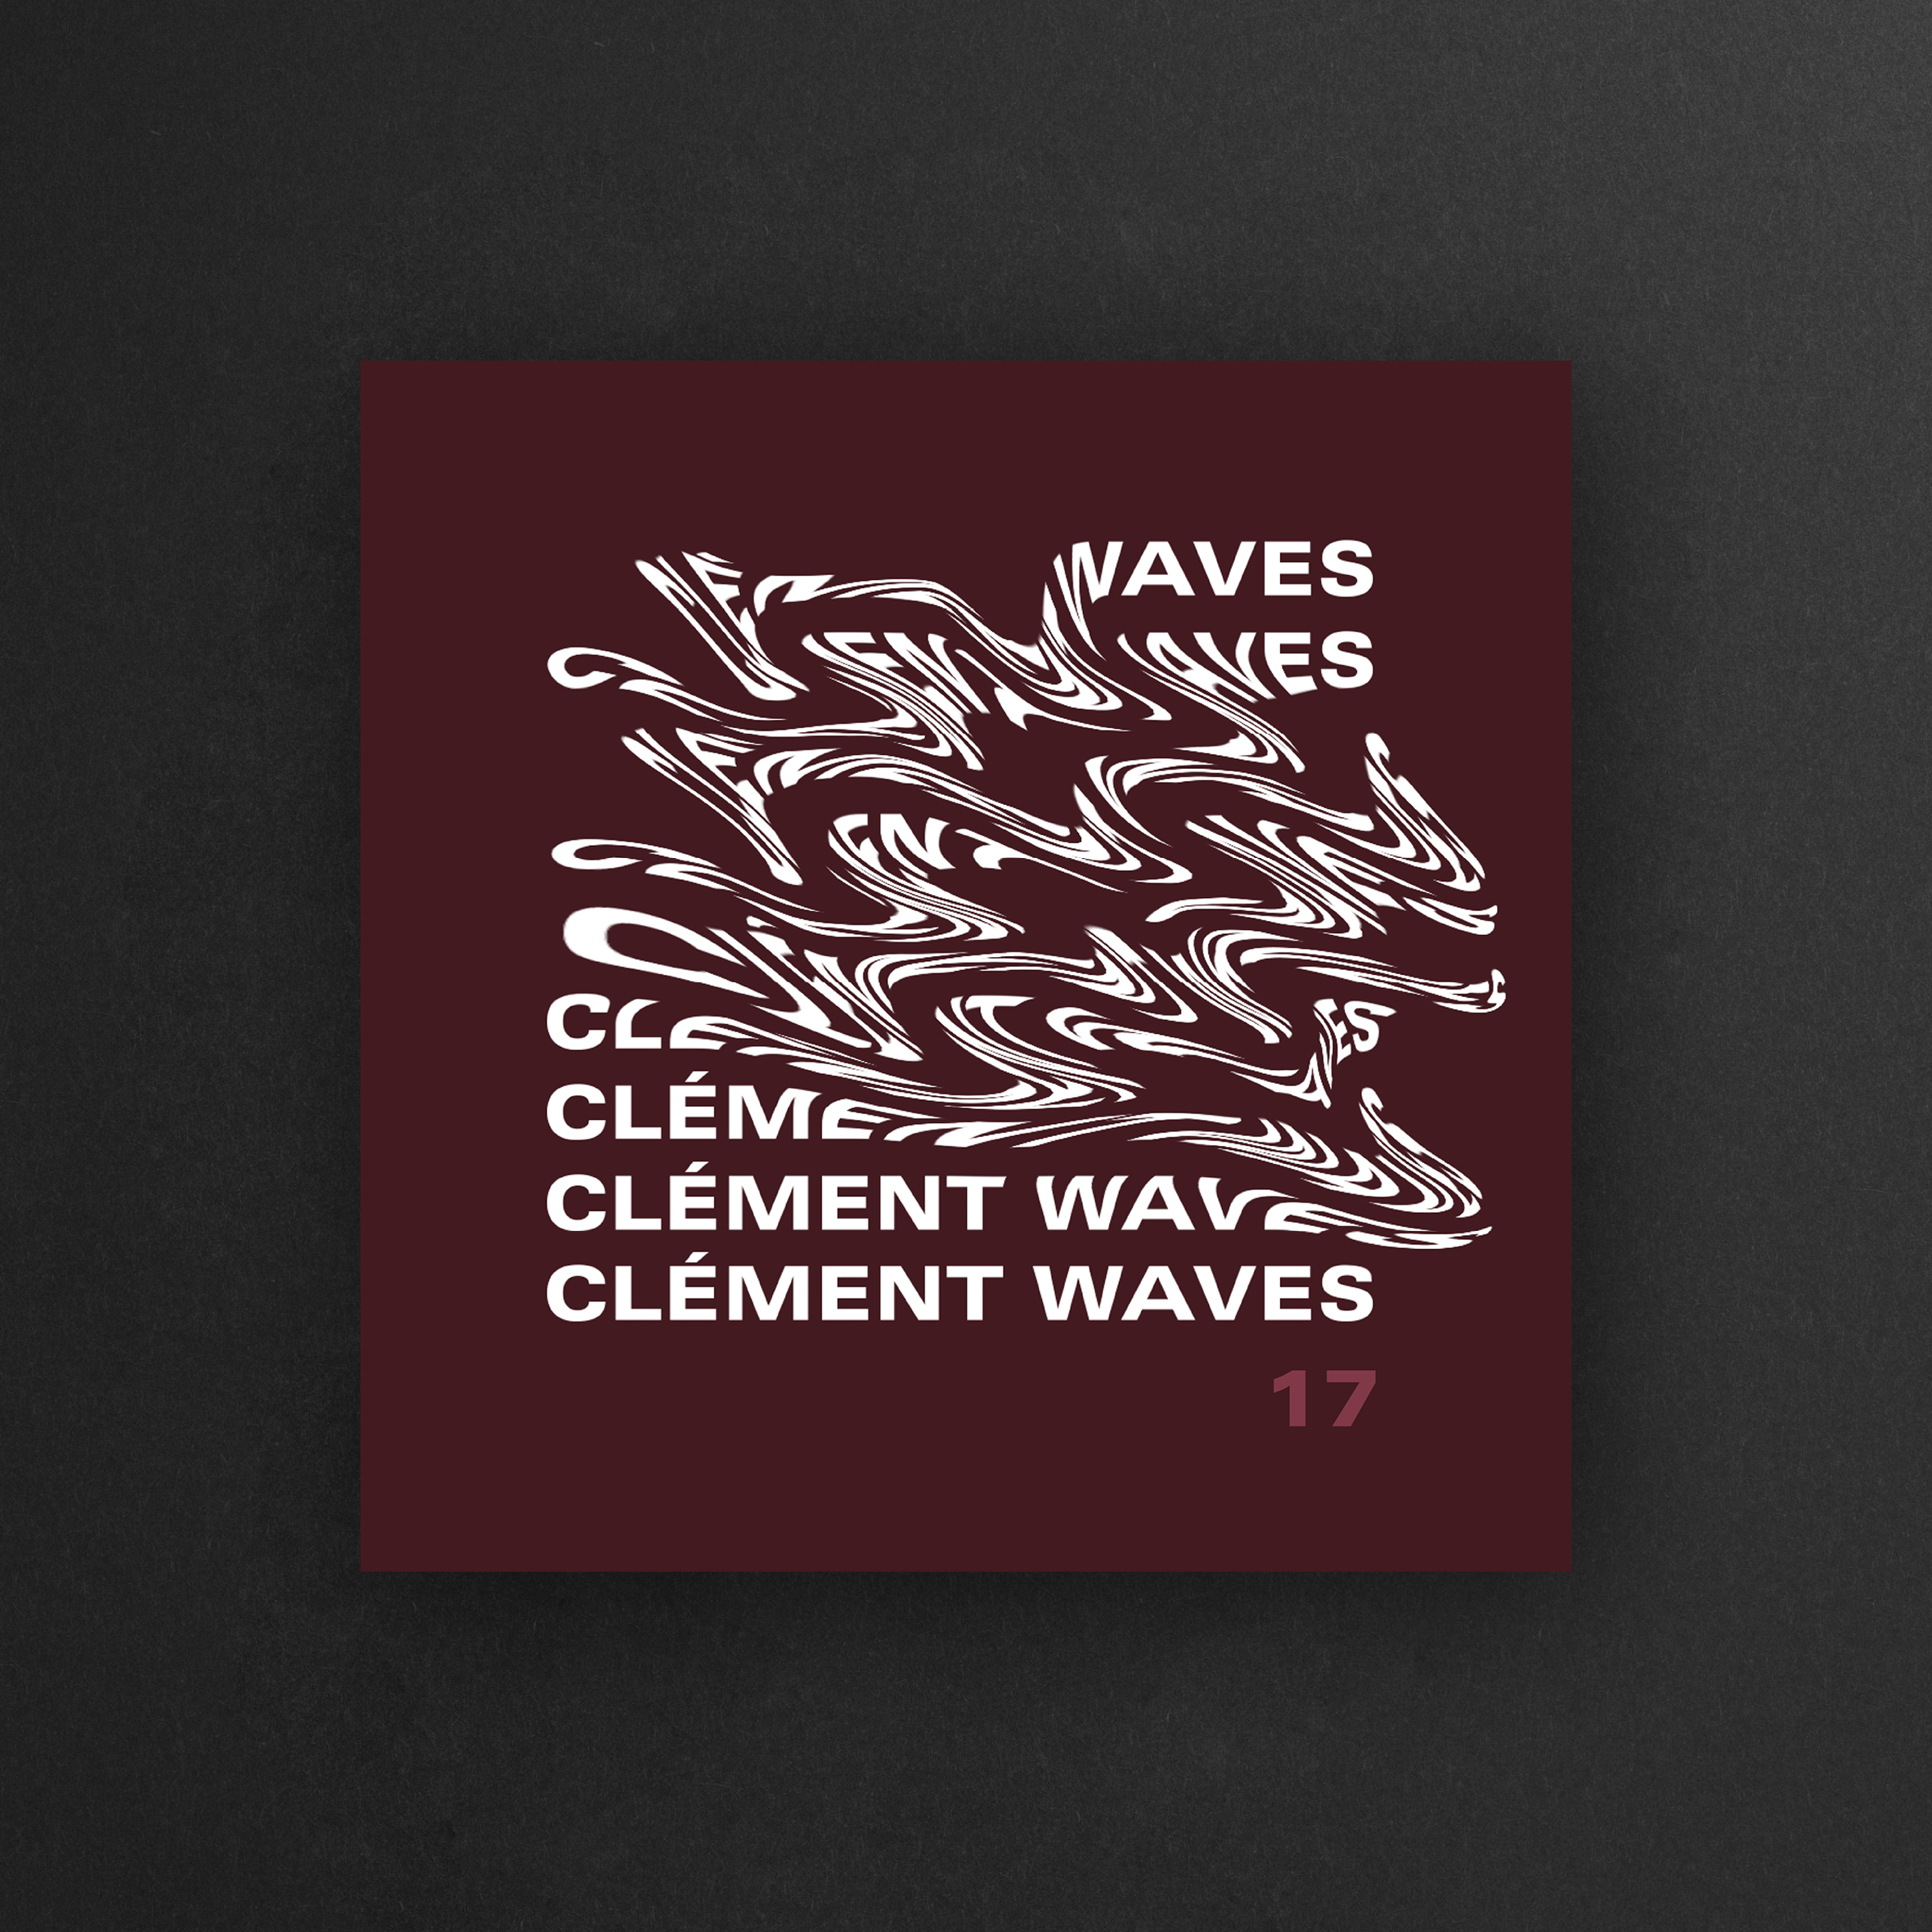 Photo des Artworks pour les covers des mix de Clement Aswf